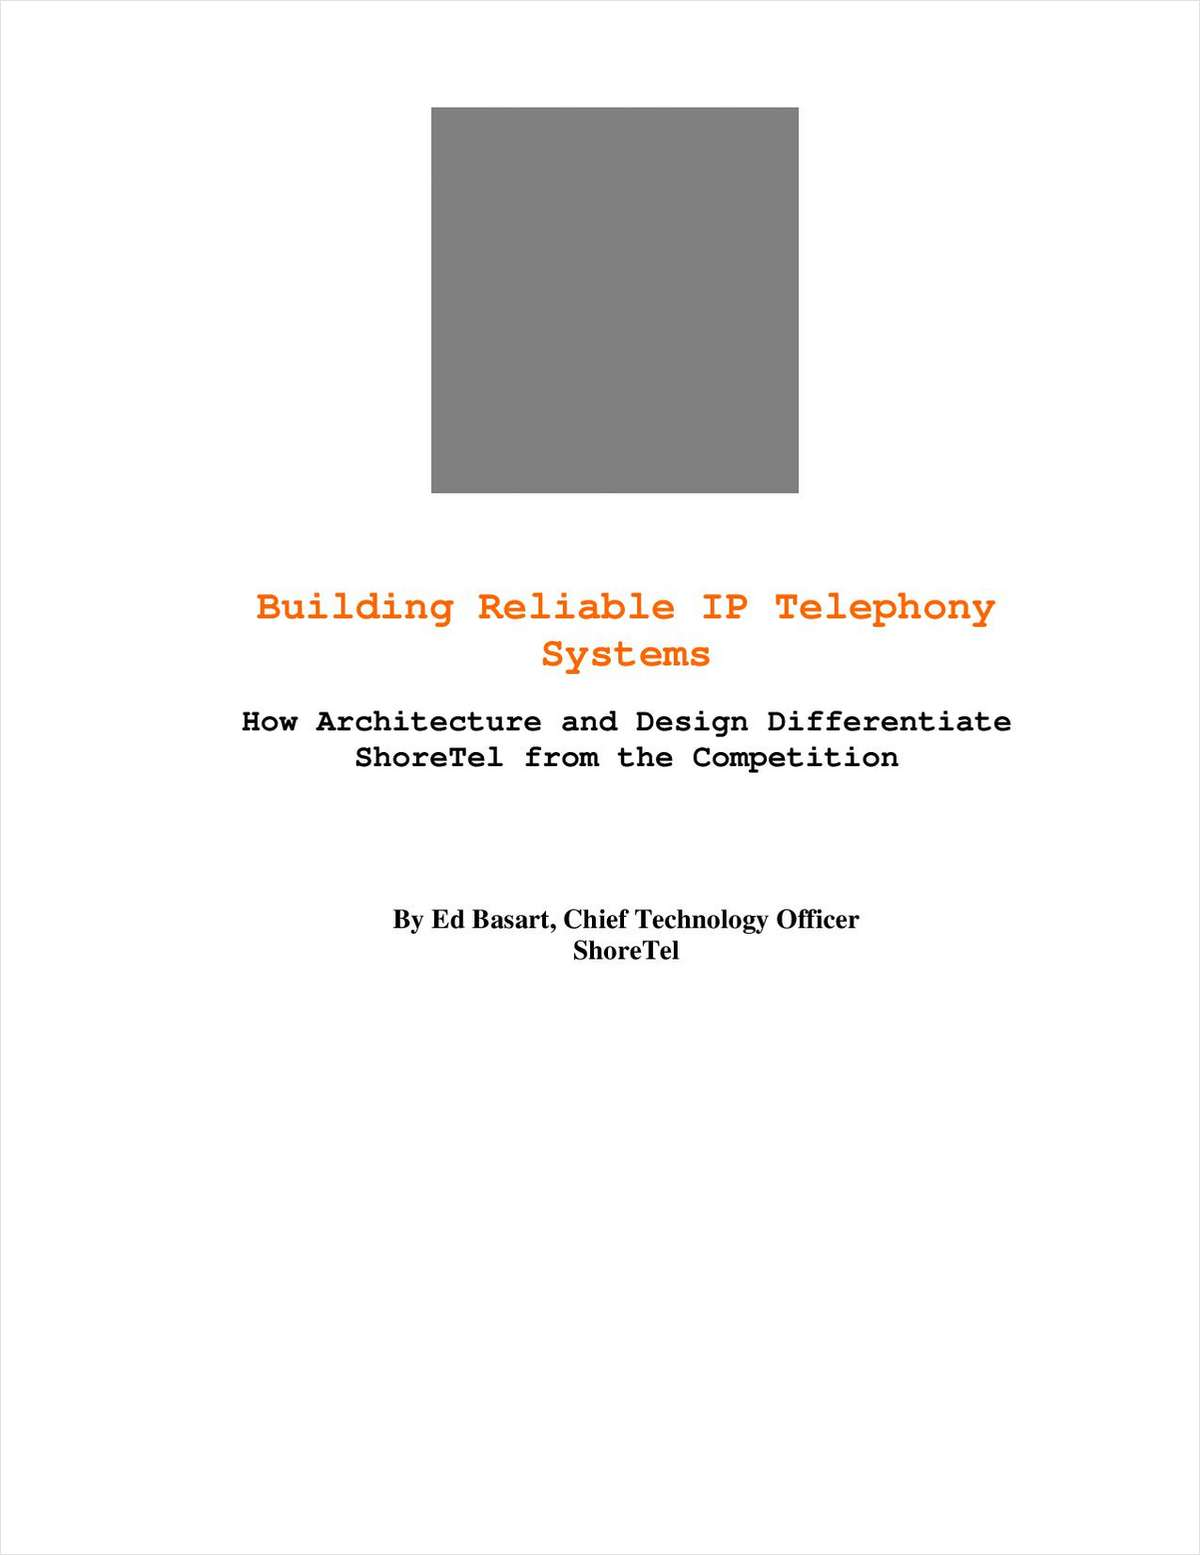 Building Reliable IP Telephony Systems